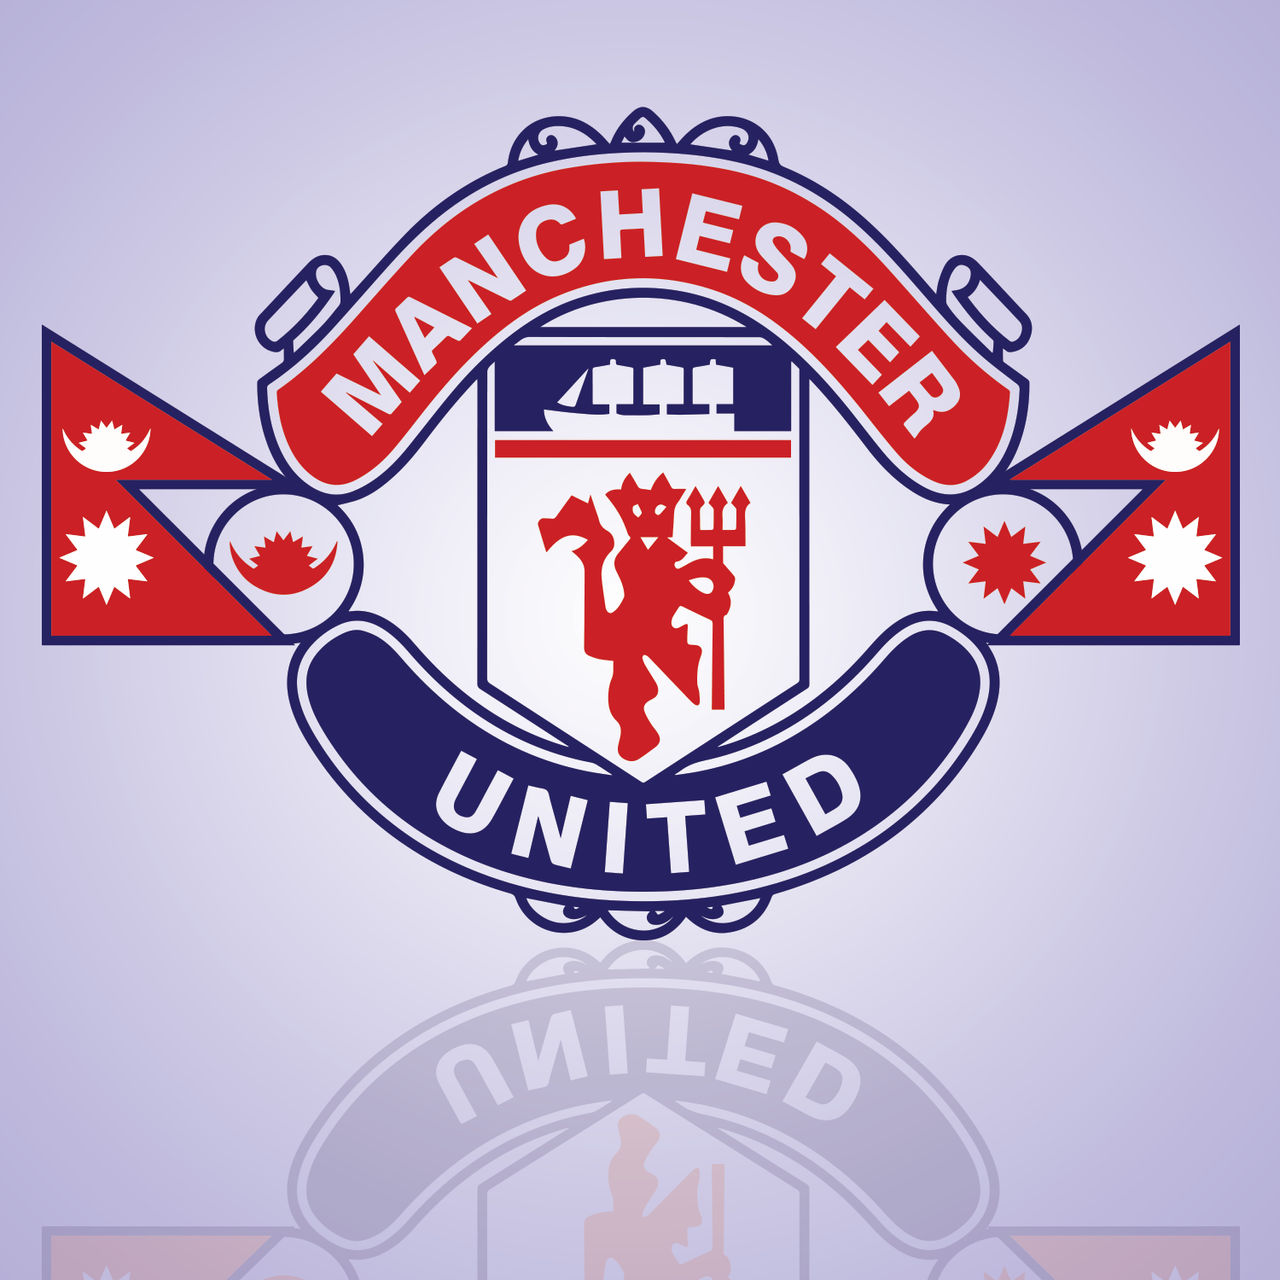 manchester united nepal logo wallpaper by walkinguy on deviantart manchester united nepal logo wallpaper